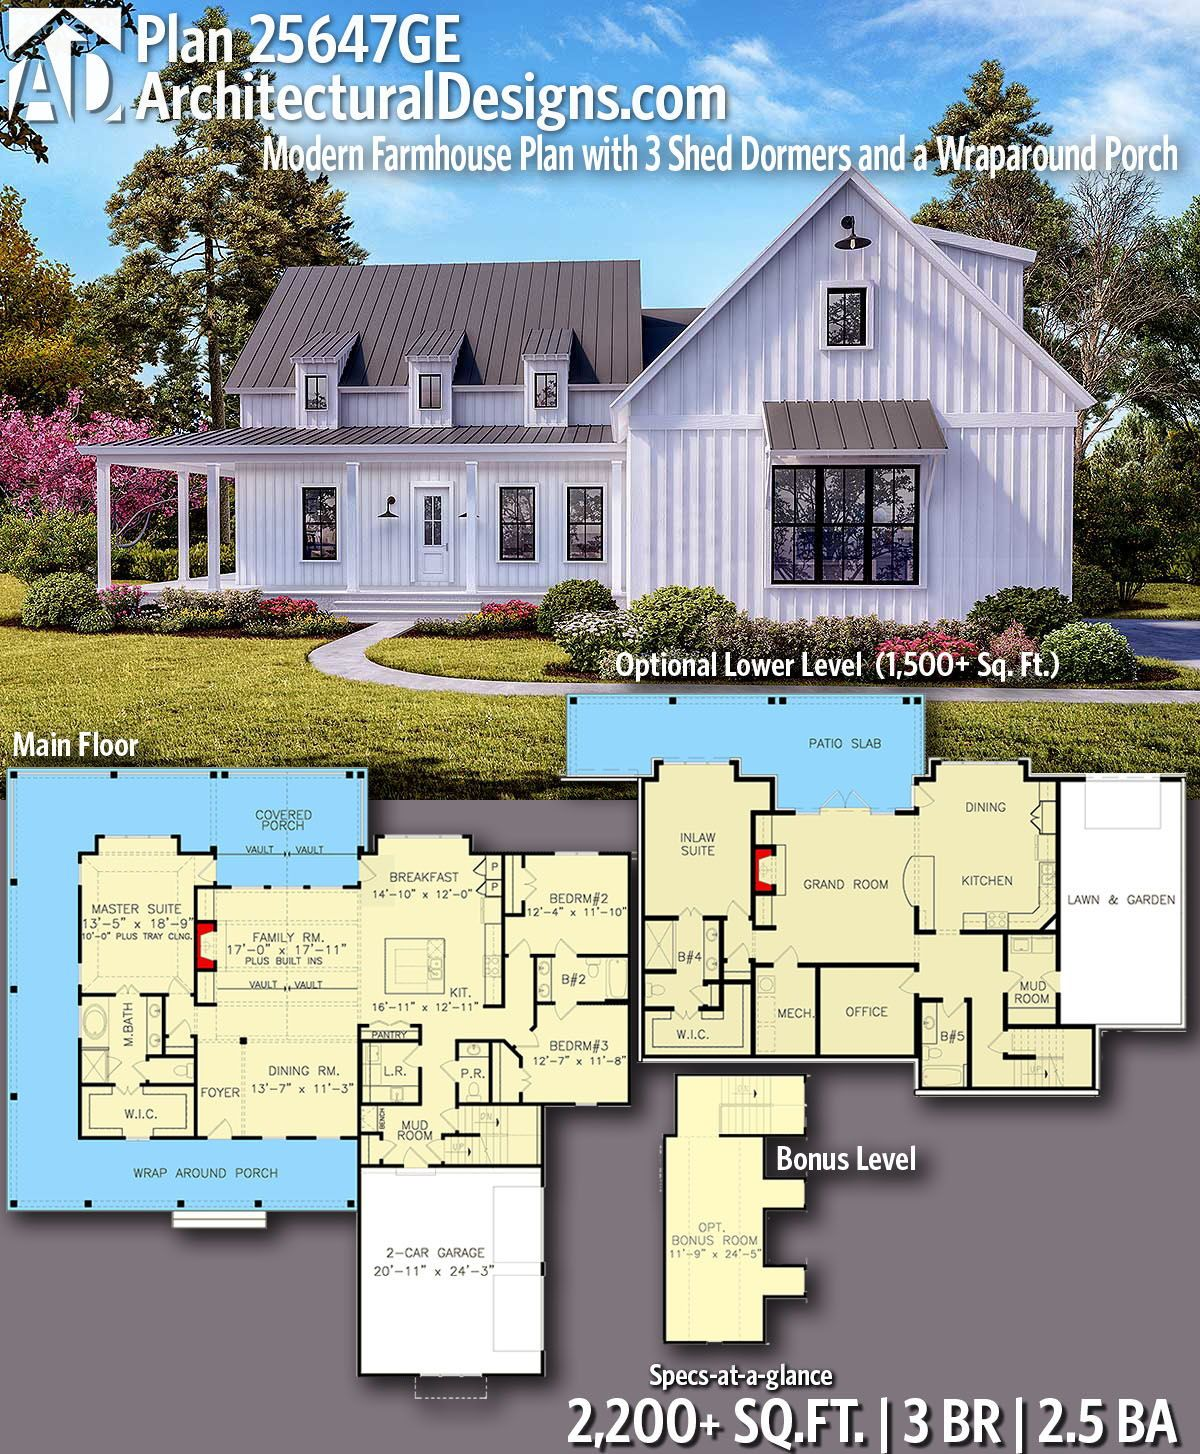 Plan 25647ge Modern Farmhouse Plan With 3 Shed Dormers And A Wraparound Porch Modern Farmhouse Plans House Plans Farmhouse Farmhouse Plans